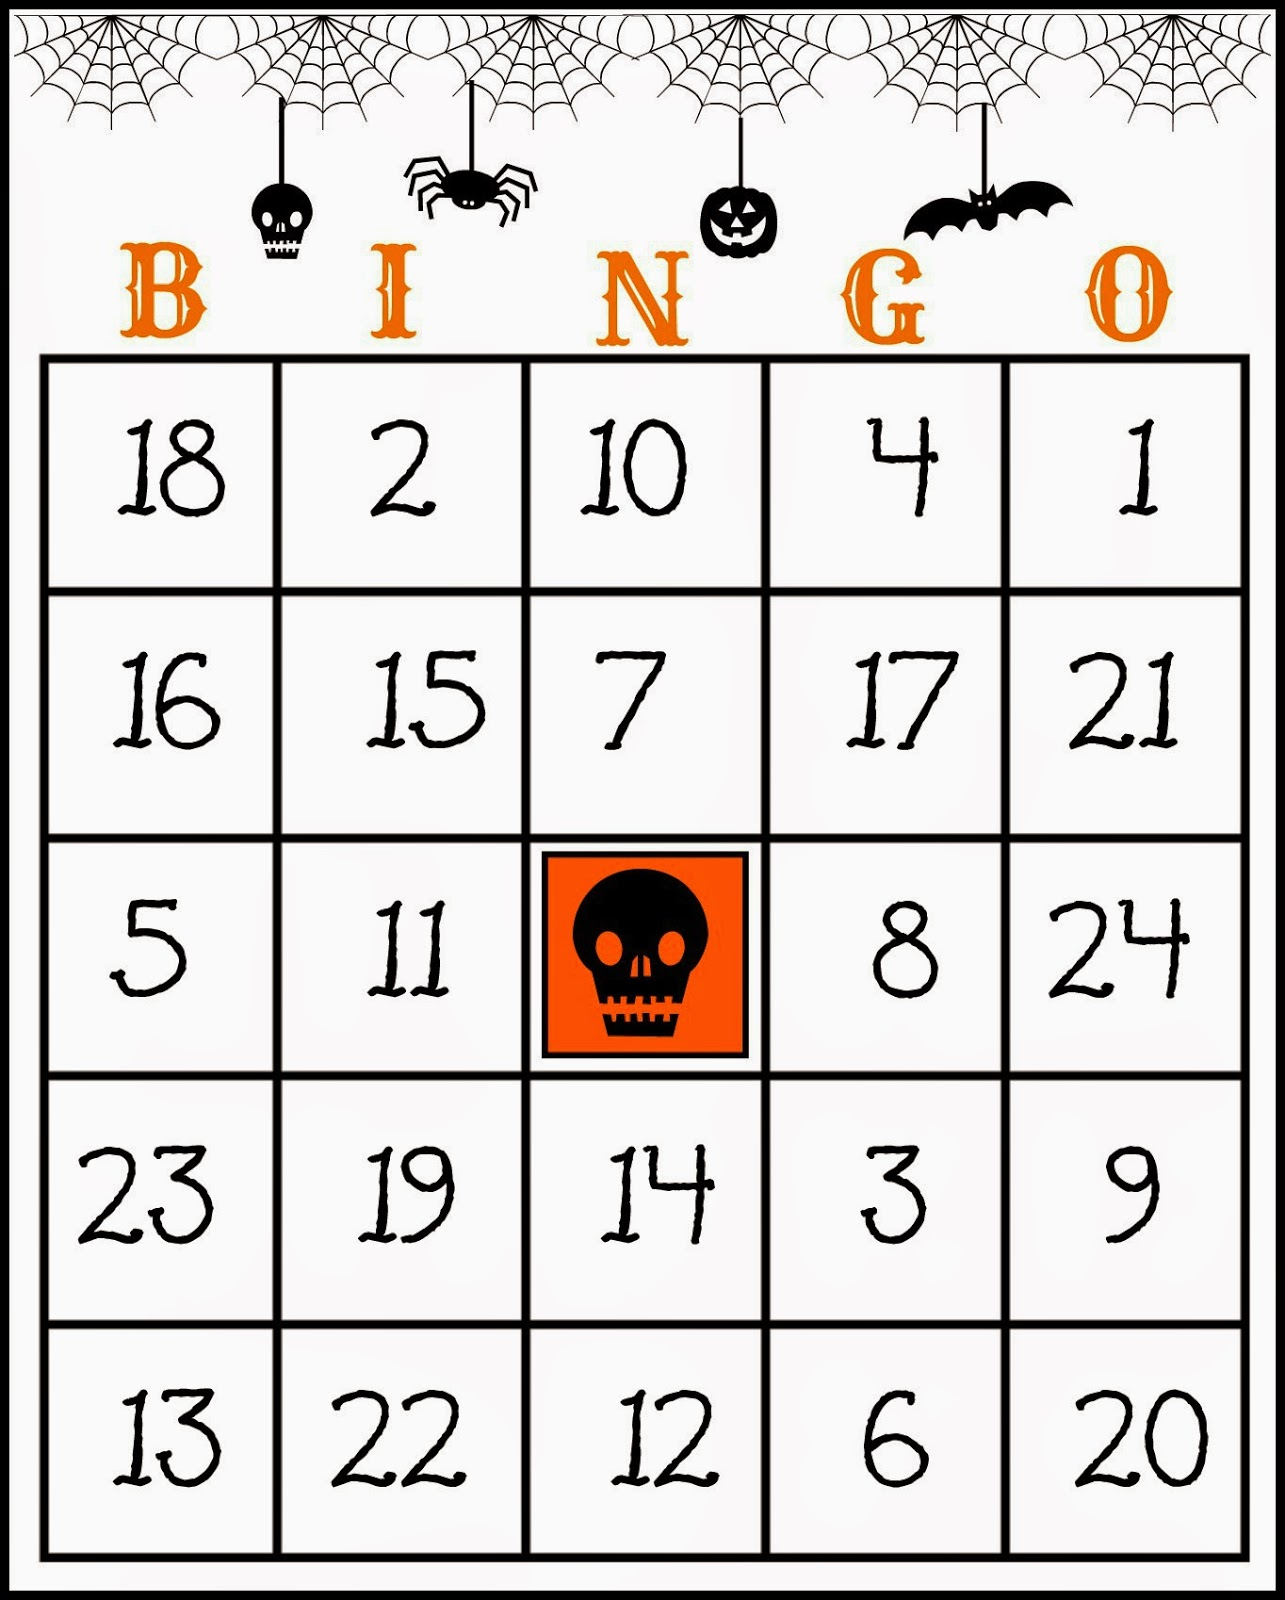 image relating to Free Printable Halloween Bingo Cards named Cunning within just Crosby: Absolutely free Printable Halloween Bingo Recreation